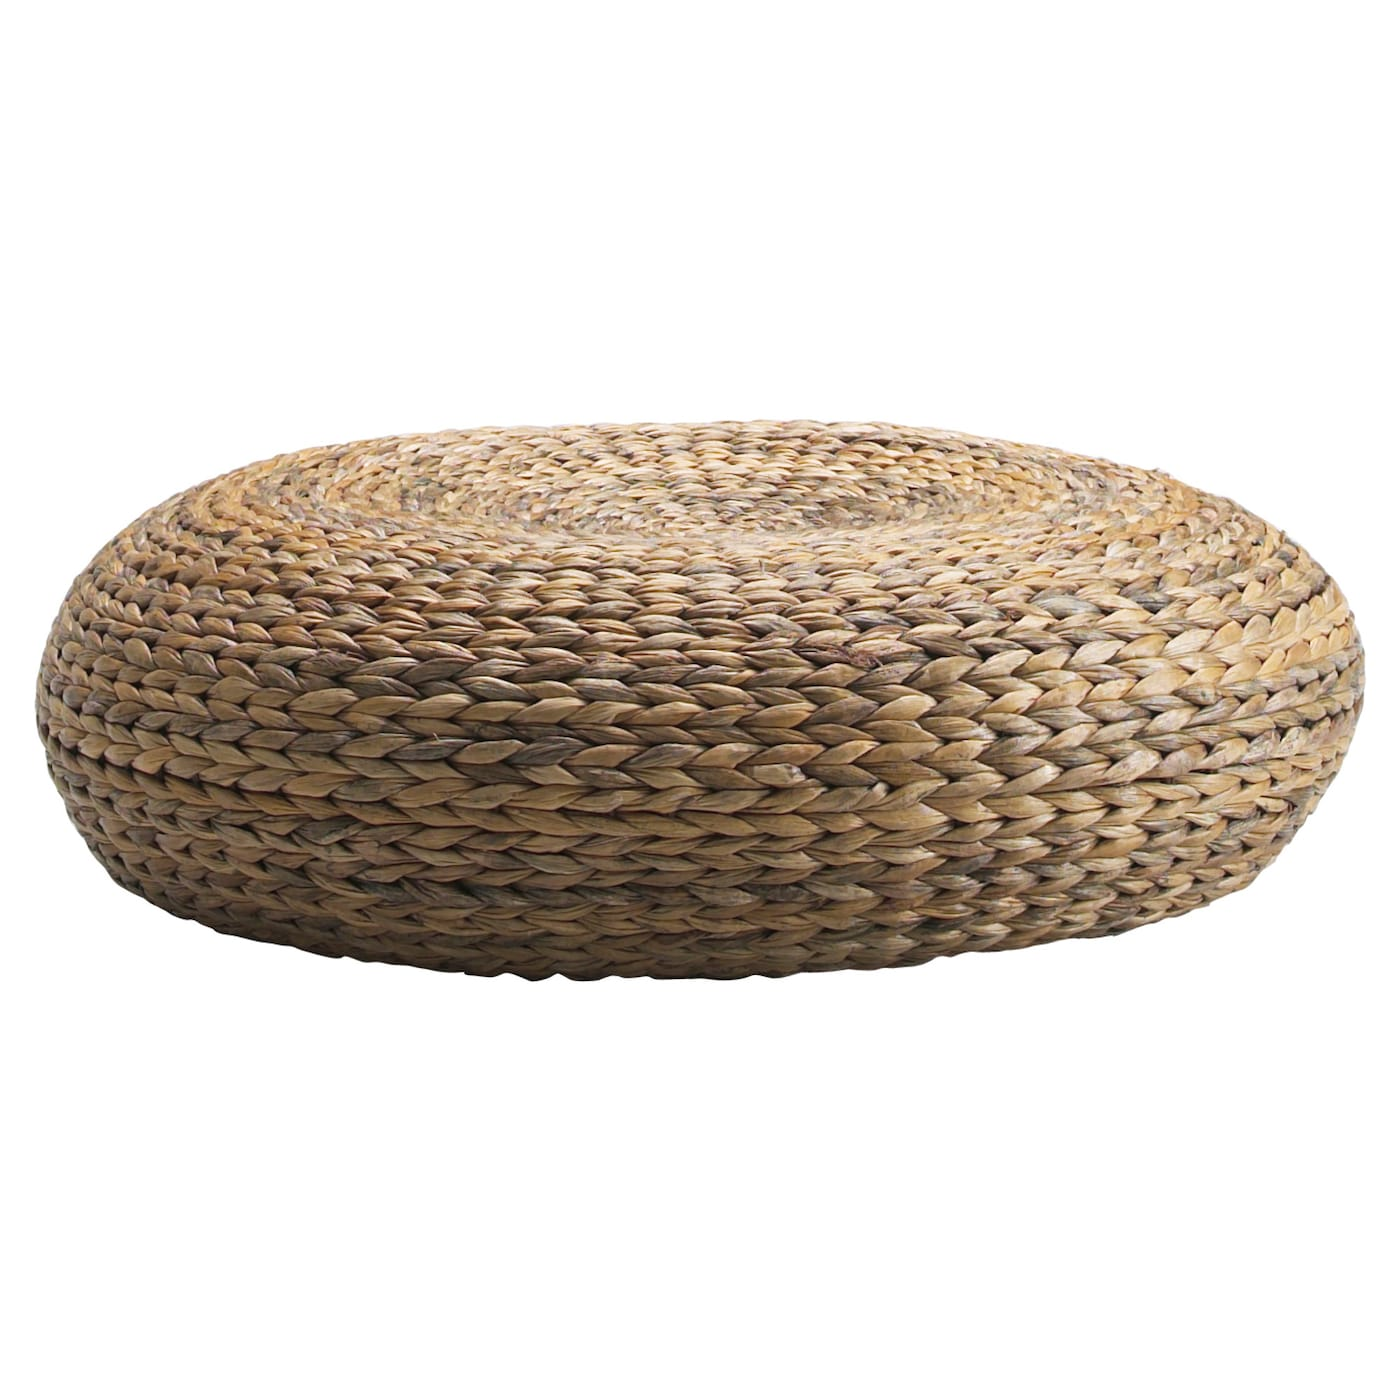 Sensational Stool Alseda Banana Fiber Alphanode Cool Chair Designs And Ideas Alphanodeonline